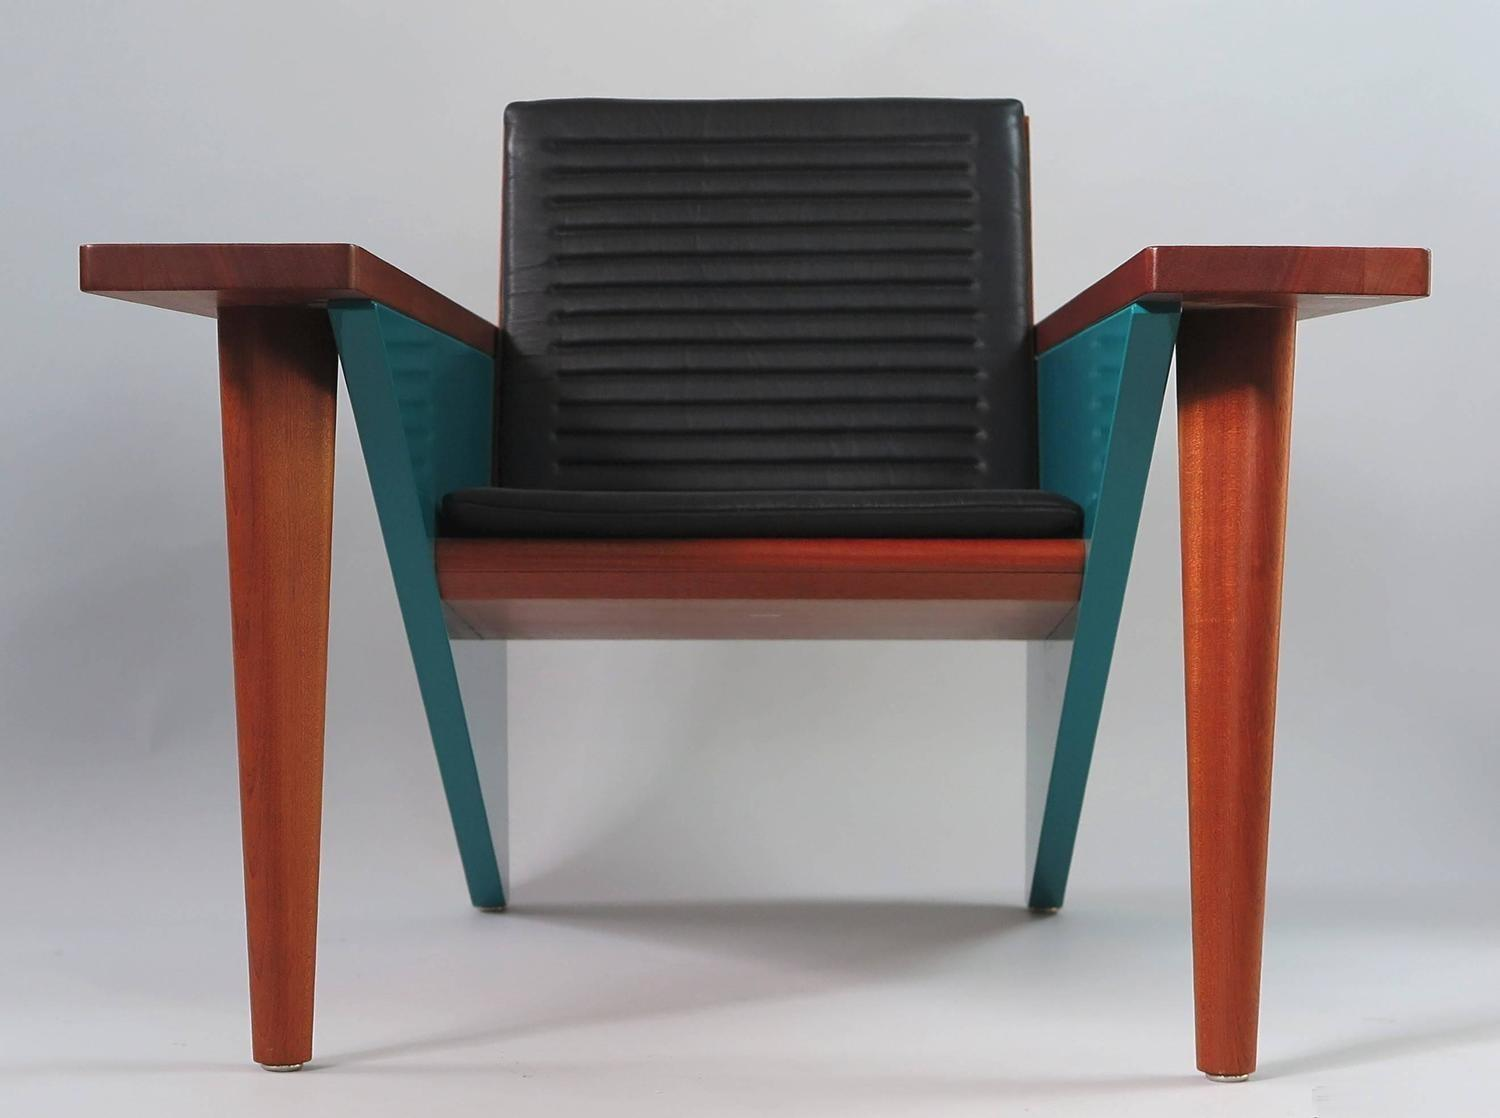 Stefan Zwicky Iconic Lounge Chair Switzerland 1980s